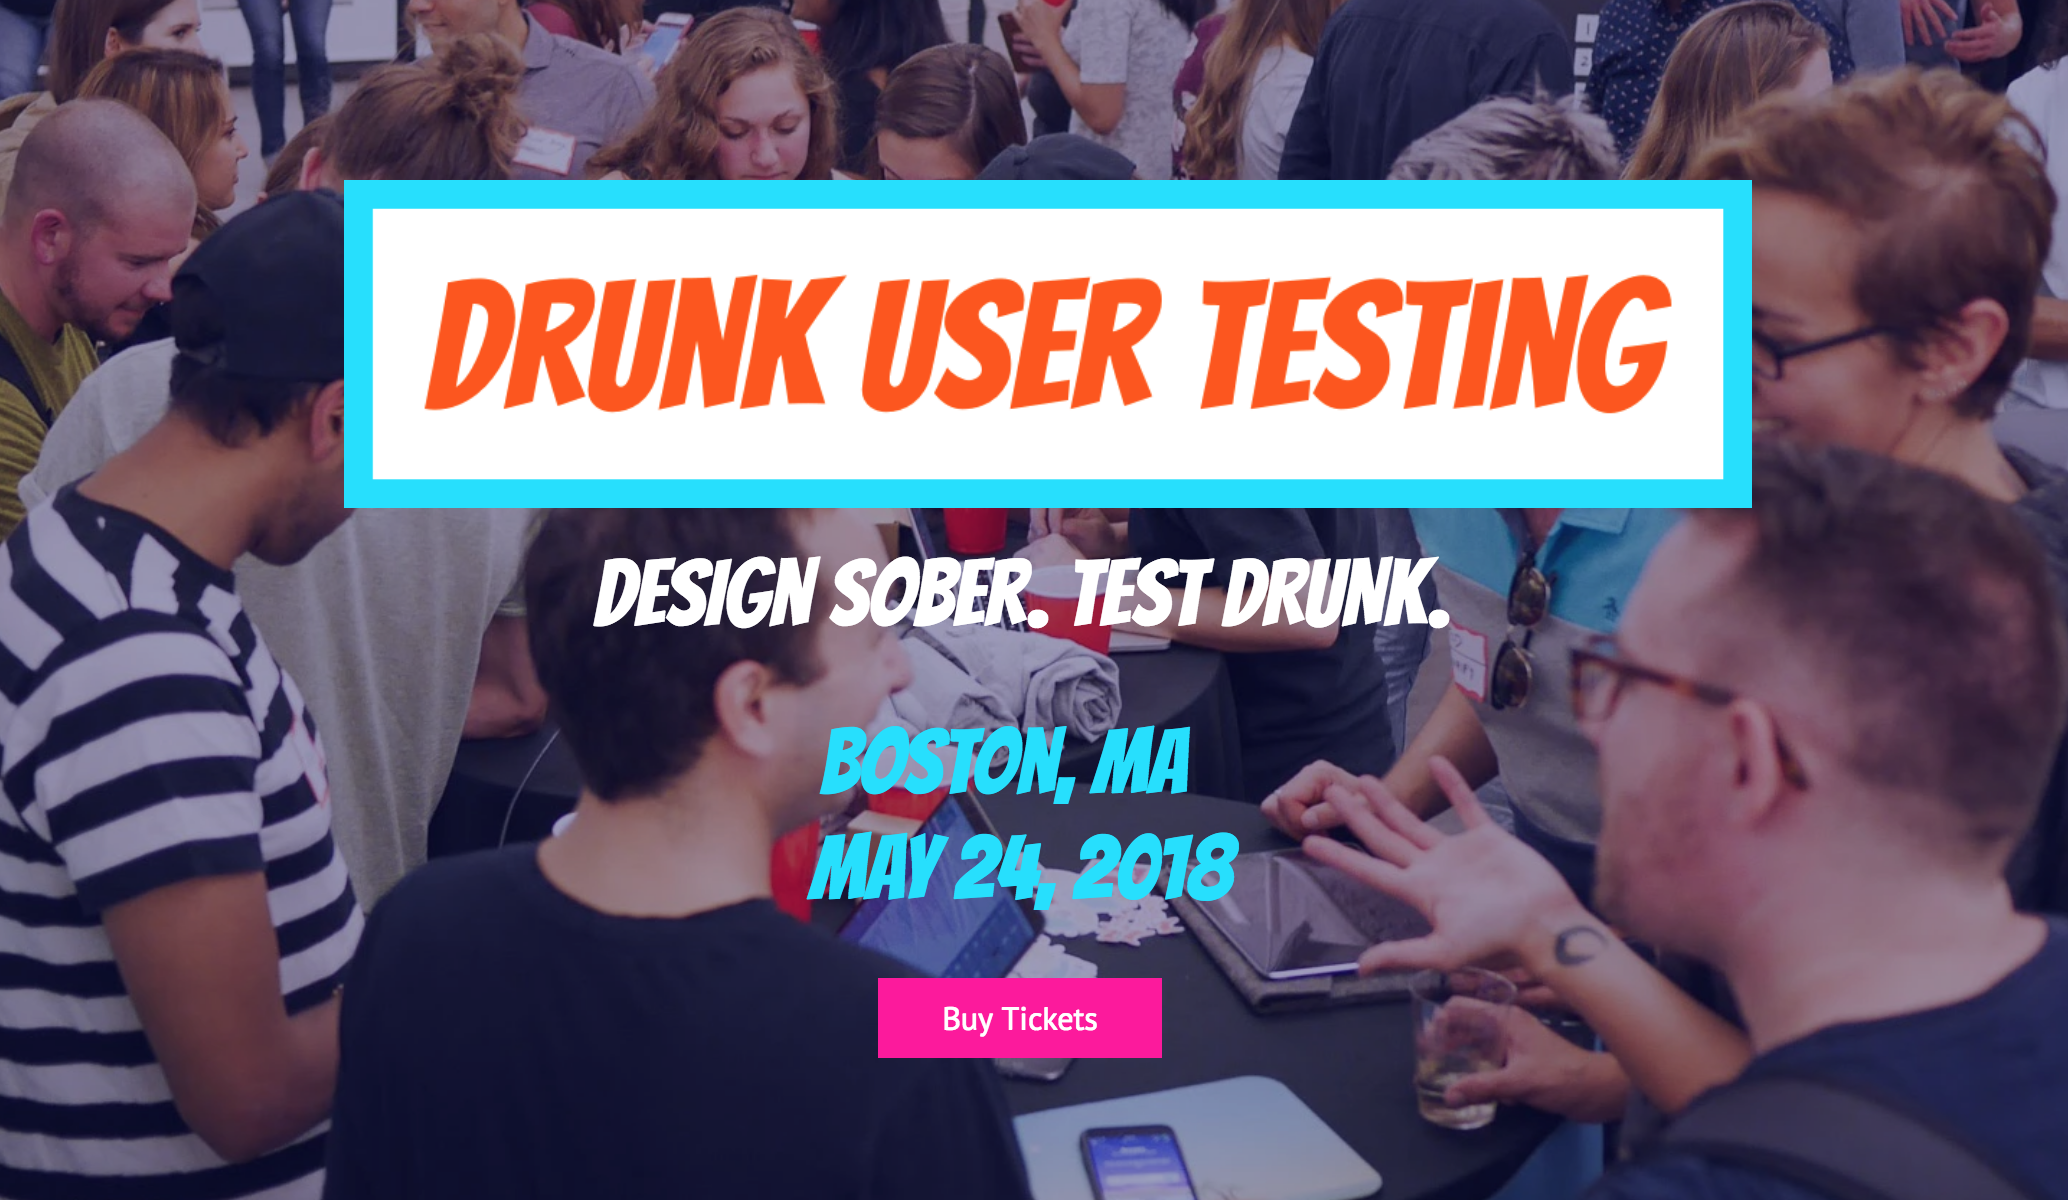 Boston Drunk User Testing